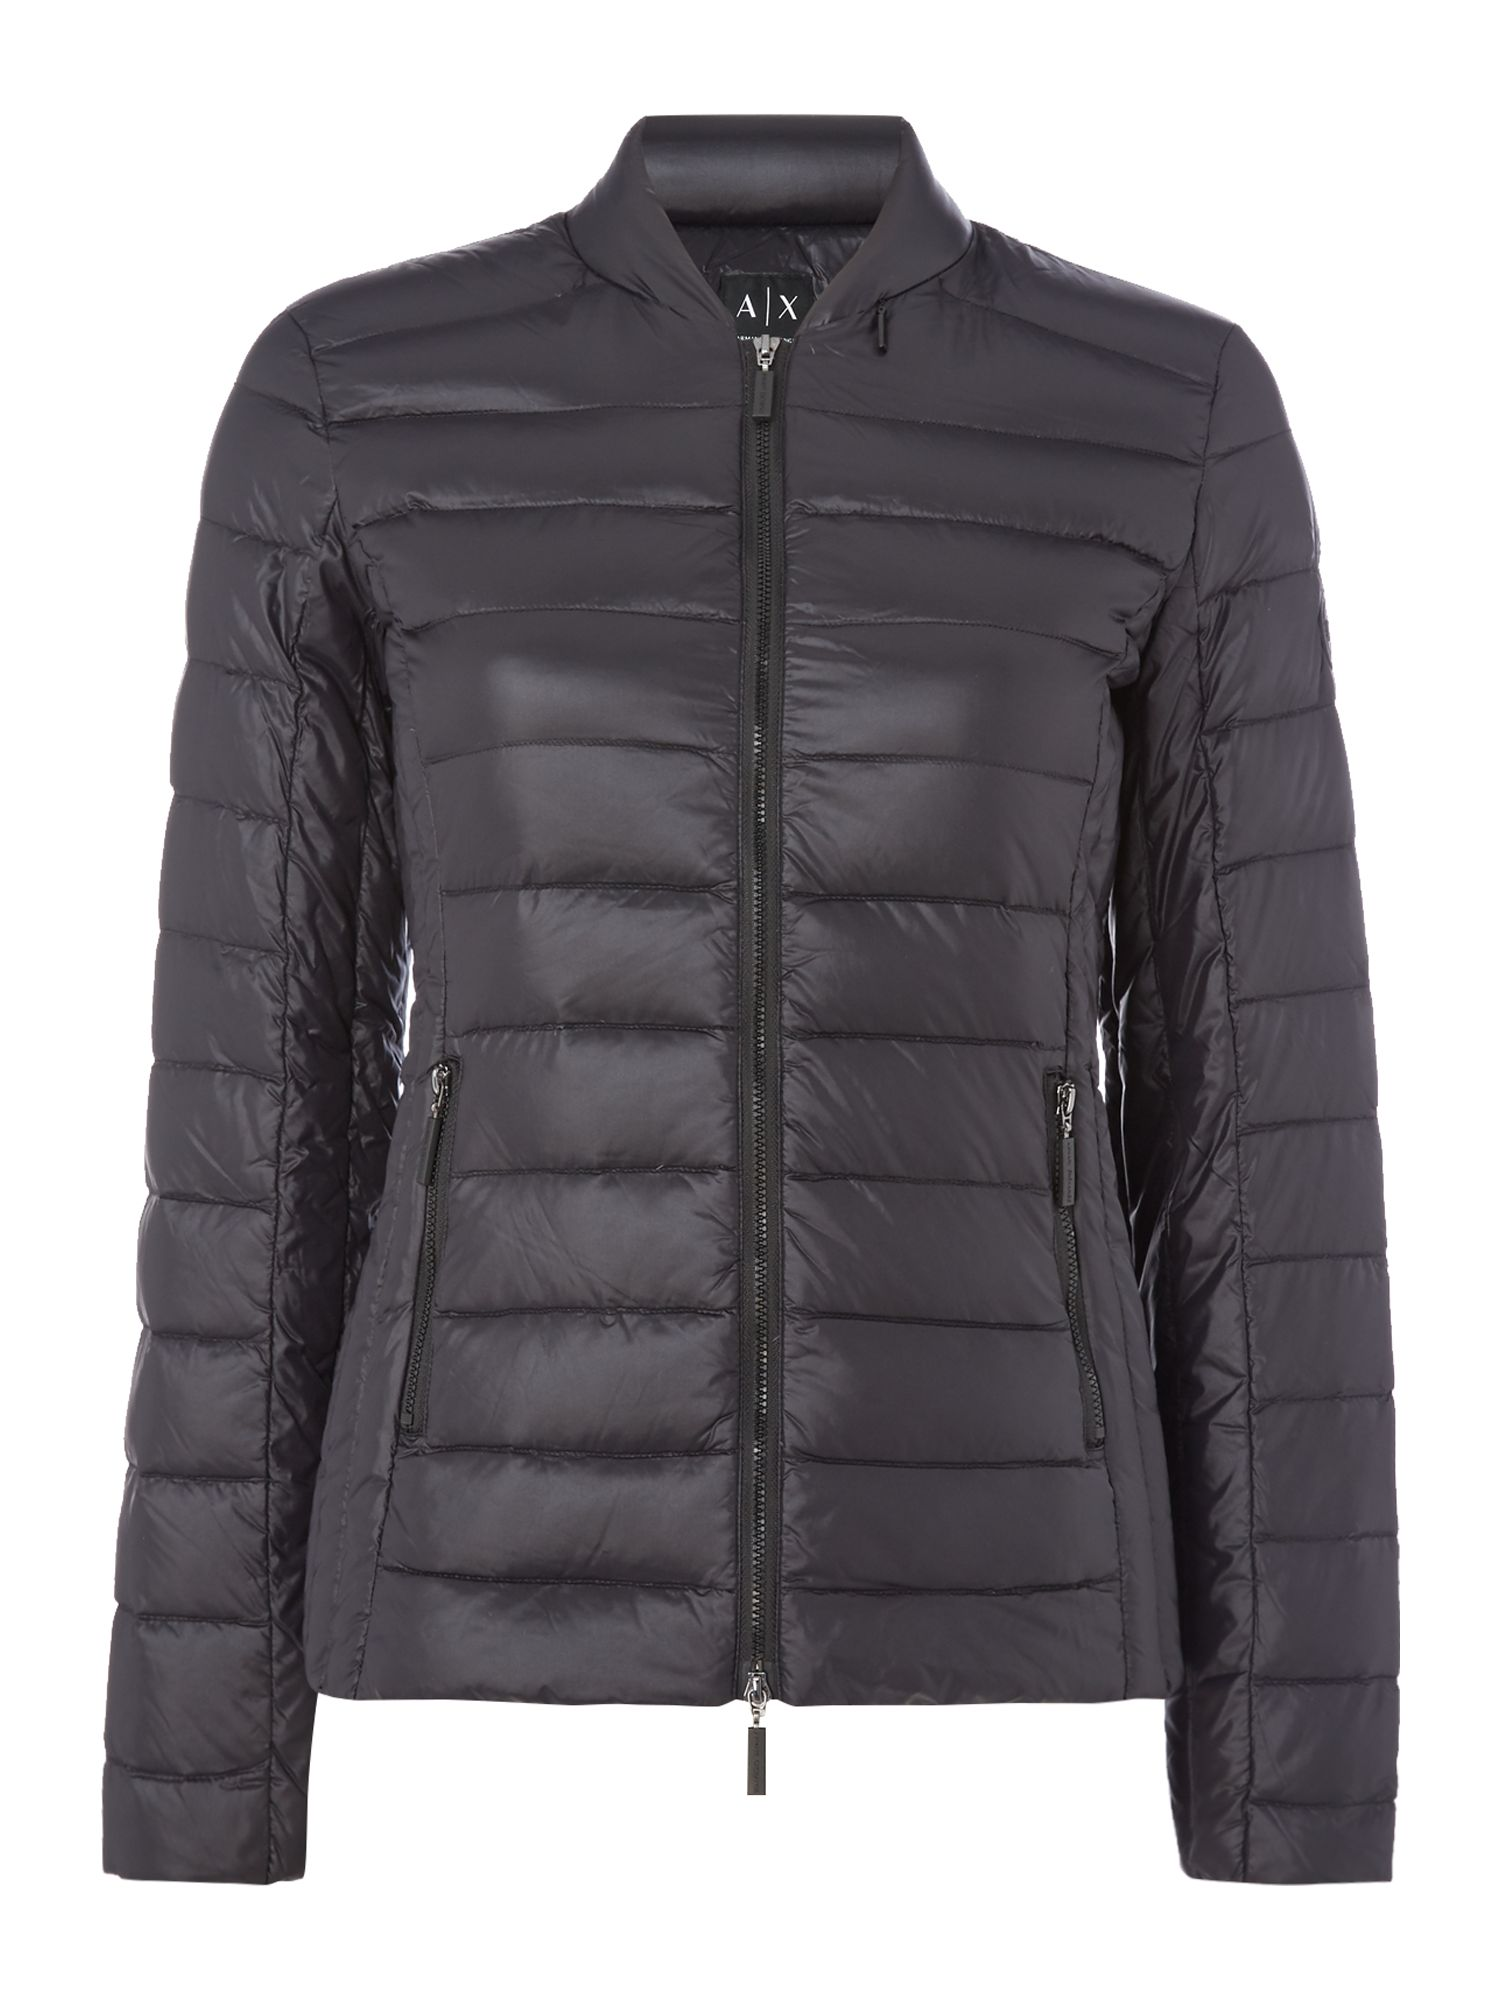 Armani Exchange Light Weight Jacket in Black, Black